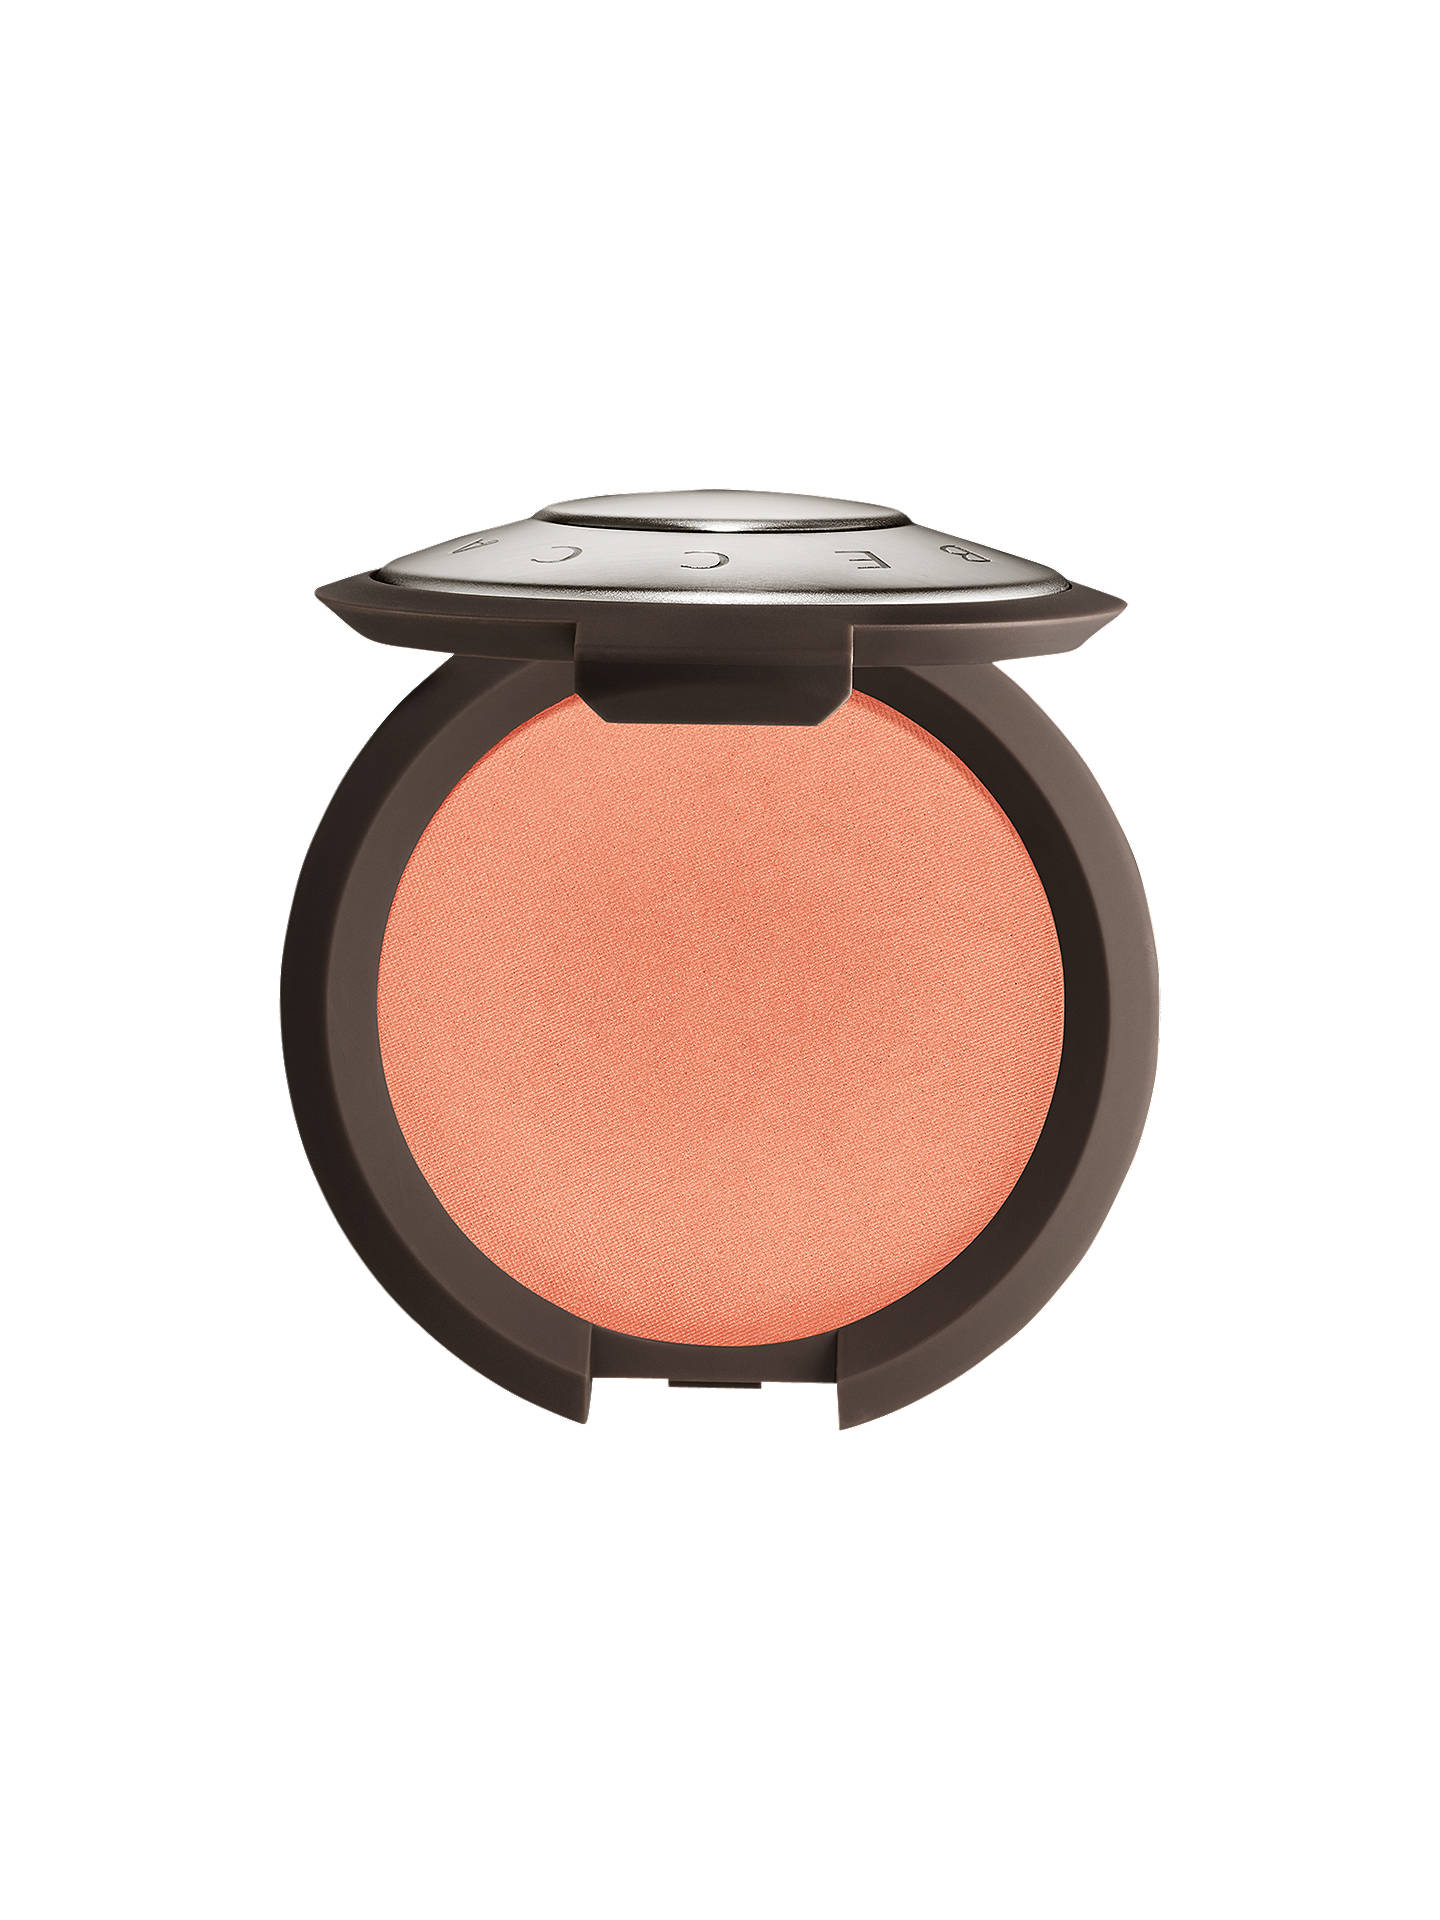 BuyBECCA Mineral Blush, Flowerchild Online at johnlewis.com